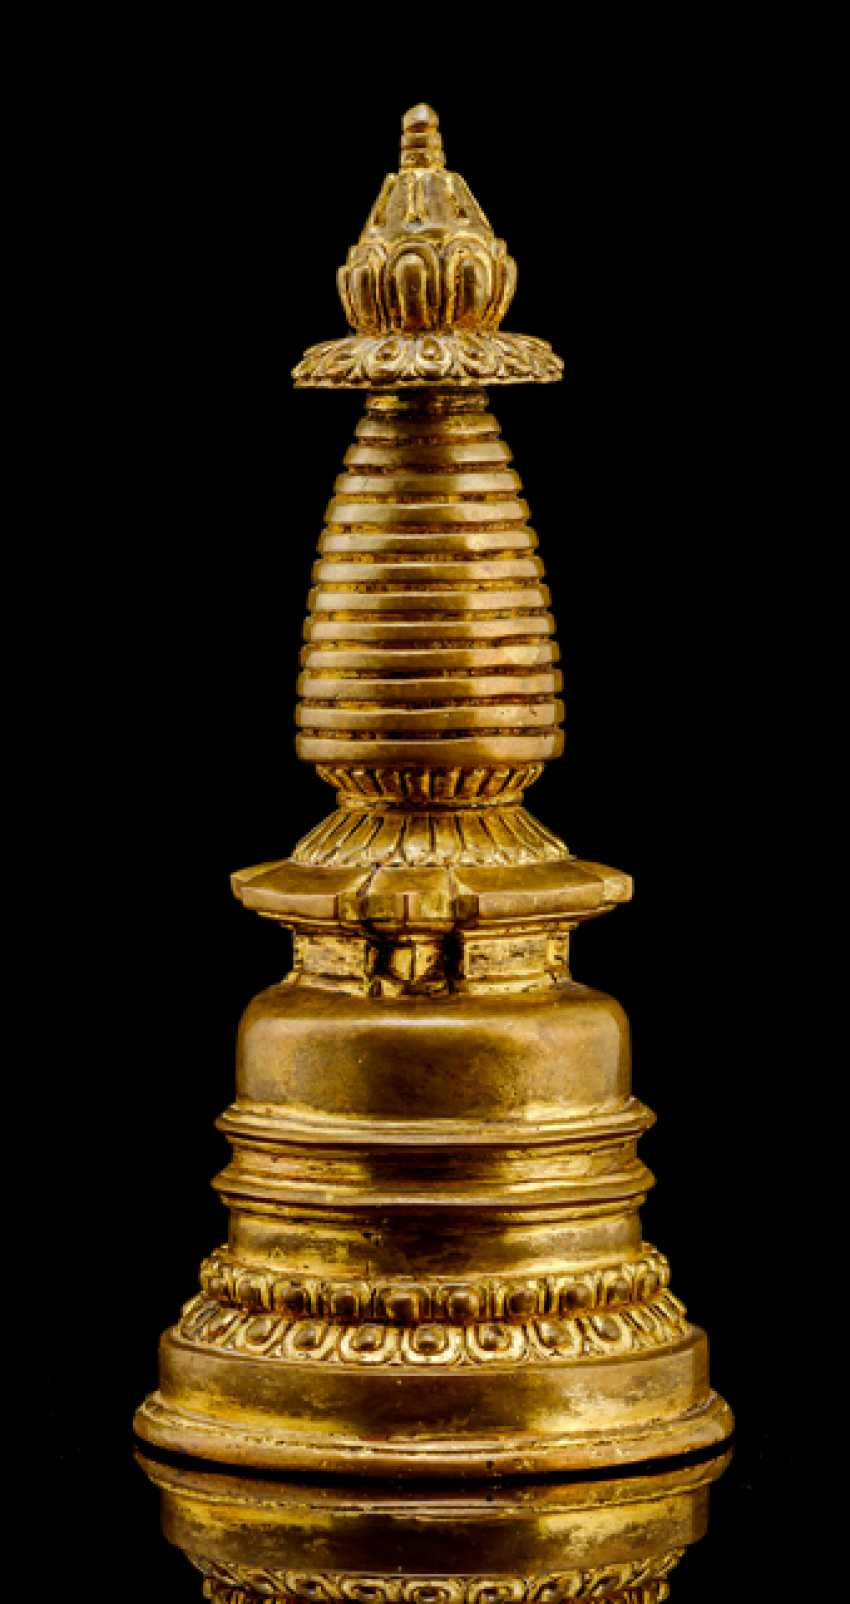 Fire-gilded Stupa made of Bronze - photo 1